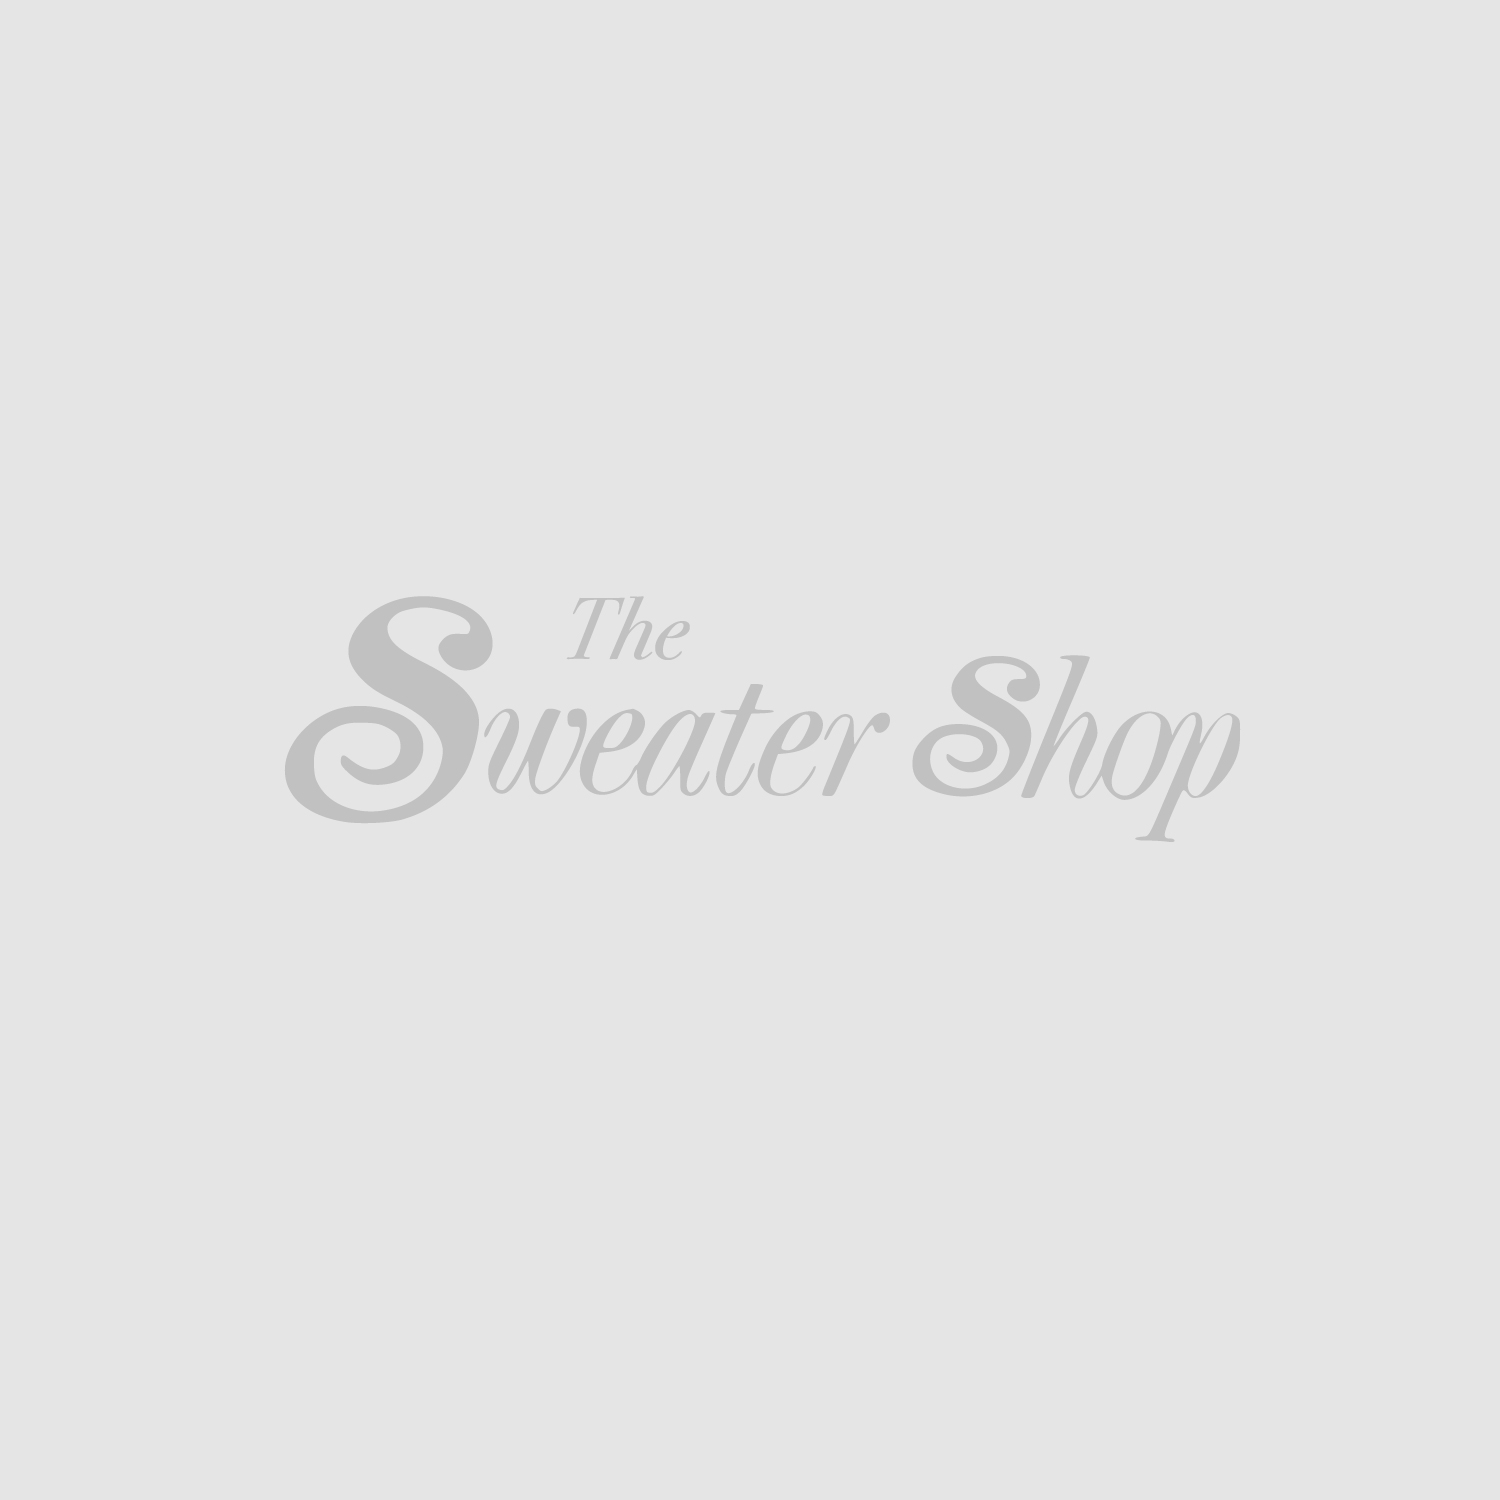 Reviews for The Sweater Shop | The Sweater Shop, Ireland